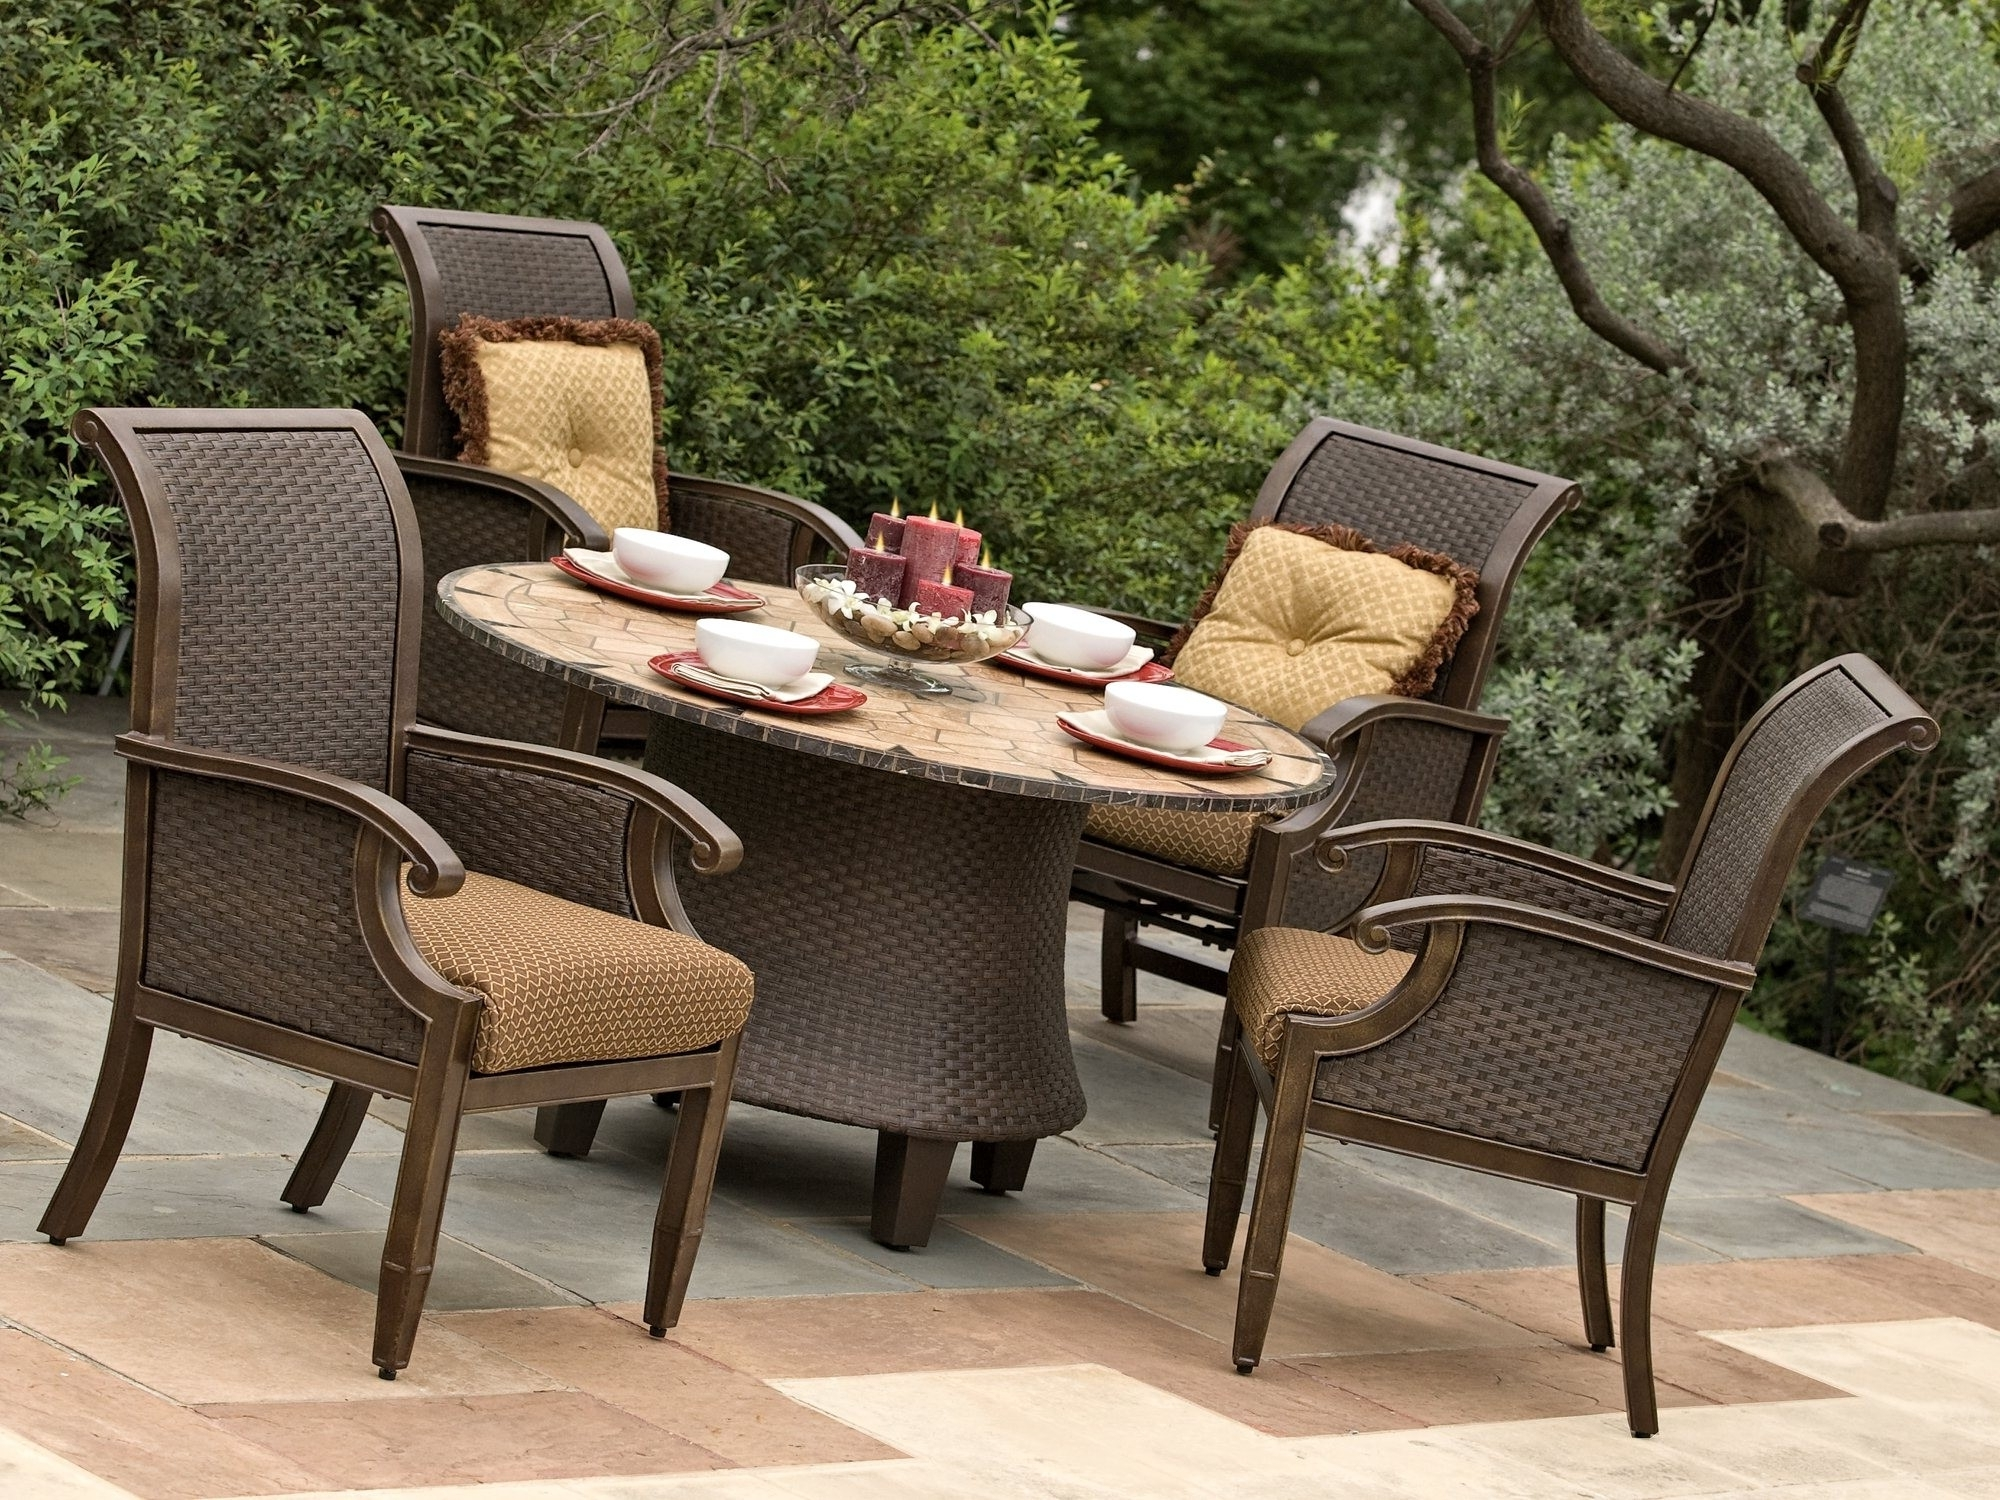 2019 Marvelous Outdoor Patio Furniture 27 Kor Relaxed Location Dining 923 In Patio Conversation Sets With Dining Table (View 6 of 20)